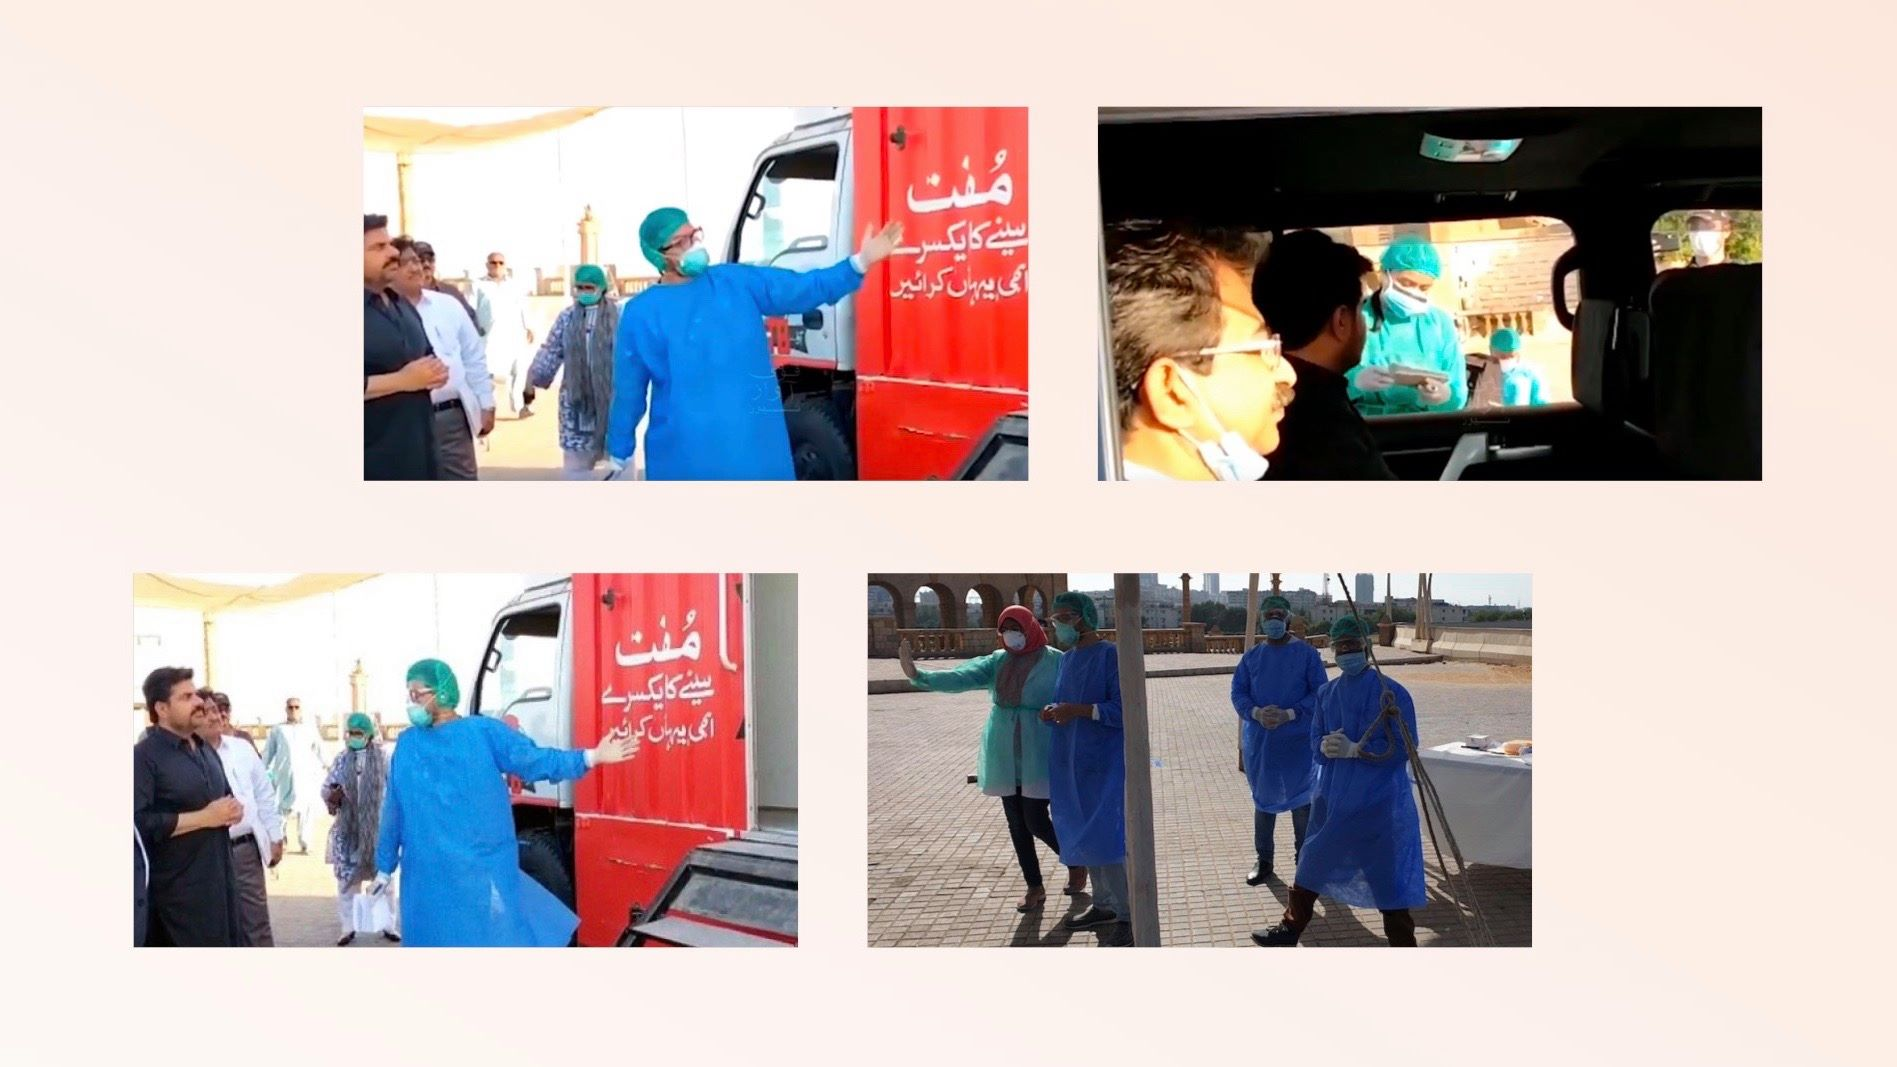 Dr. Muhammad Moiz helping set up Pakistan's first drive-thru Coronavirus testing lab